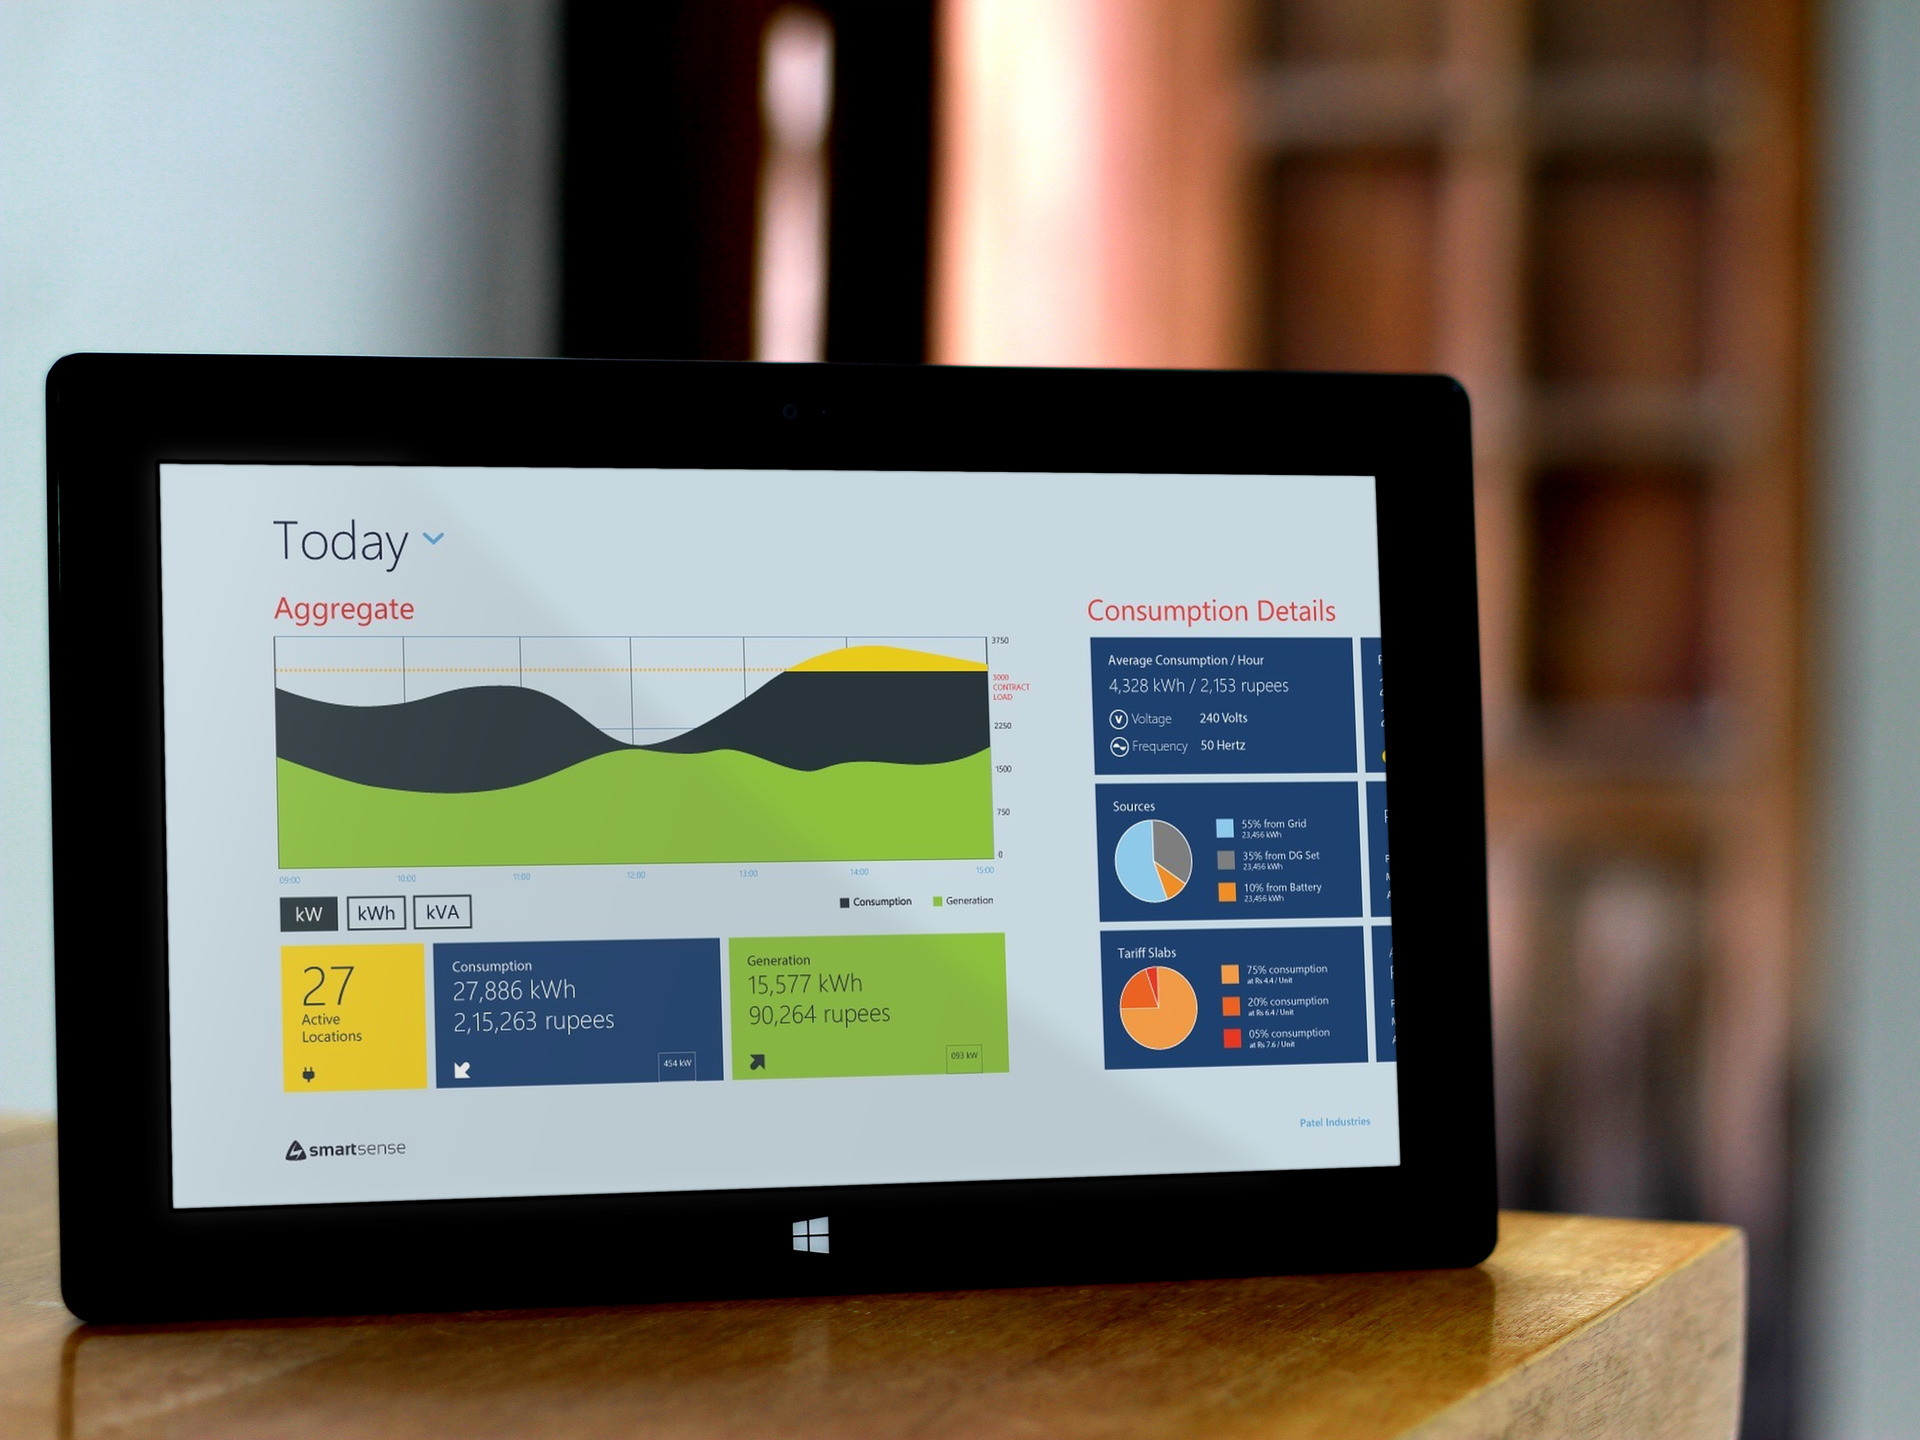 Windows Metro App for CXOs to monitor and manage power consumption of their establishment